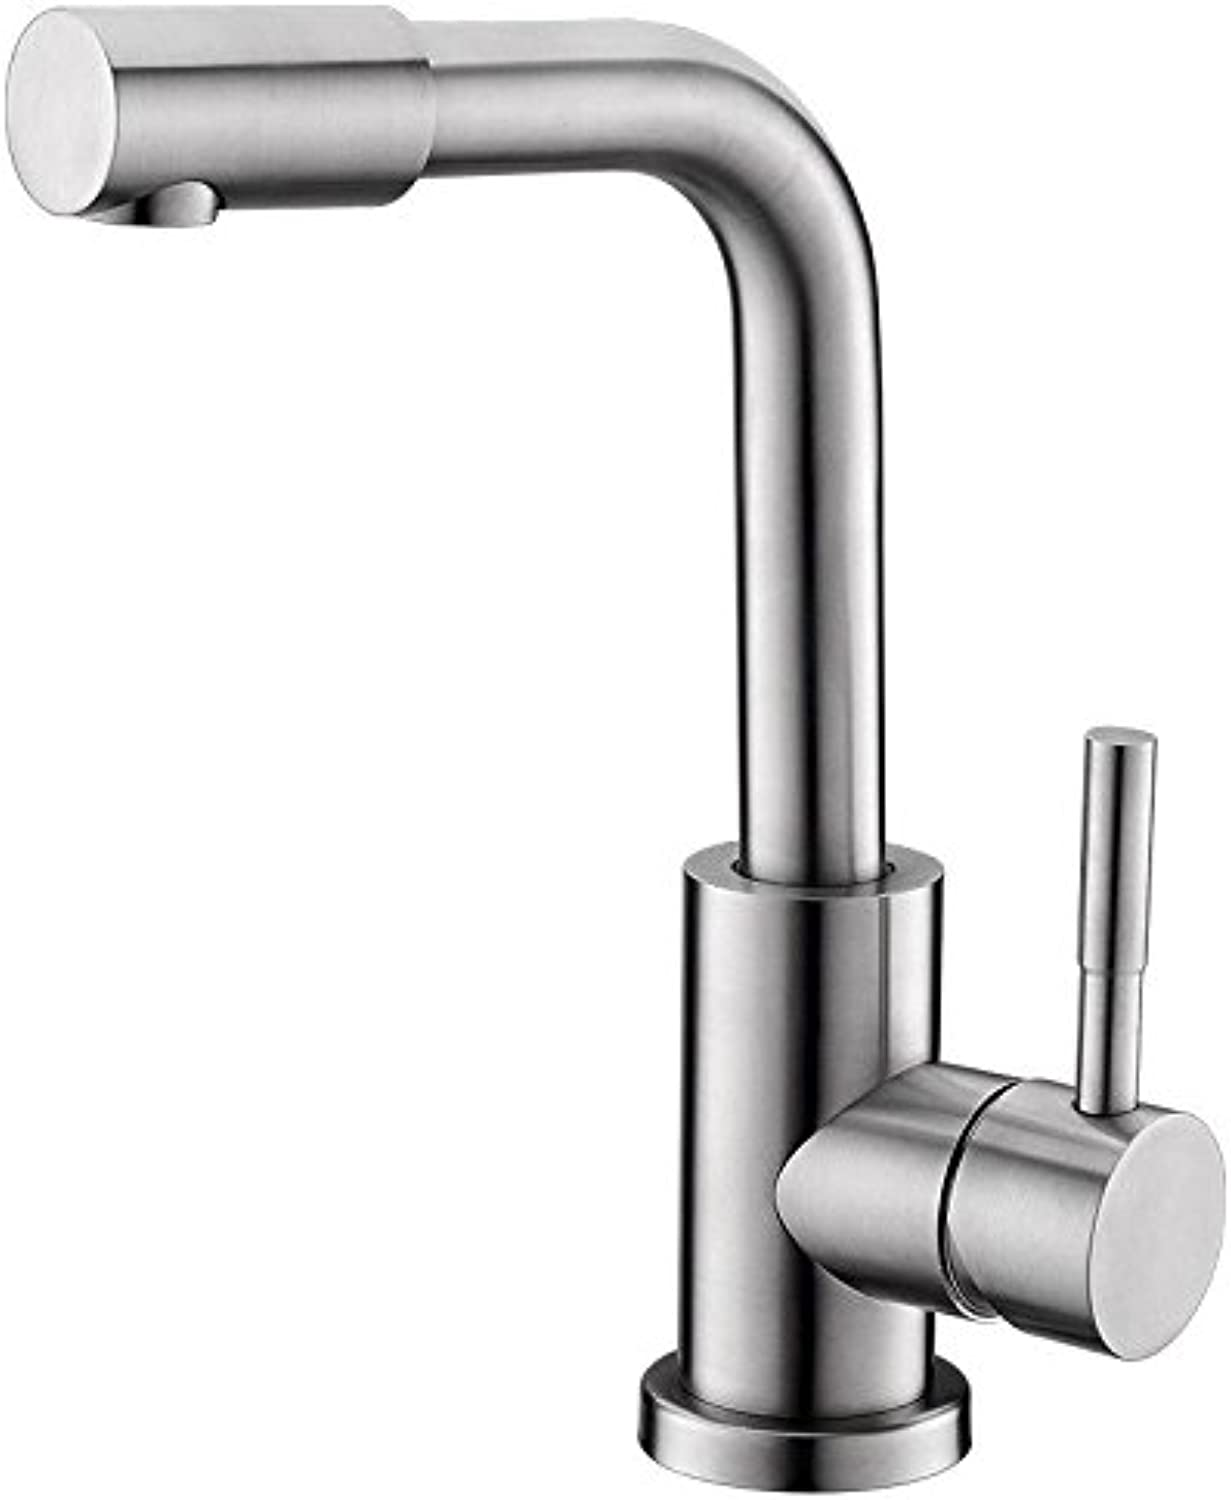 AQMMi Basin Taps Bathroom Sink Faucet 1 Hole Hot and Cold Water 304 Stainless Steel Bathroom Sink Faucet Basin Mixer Tap